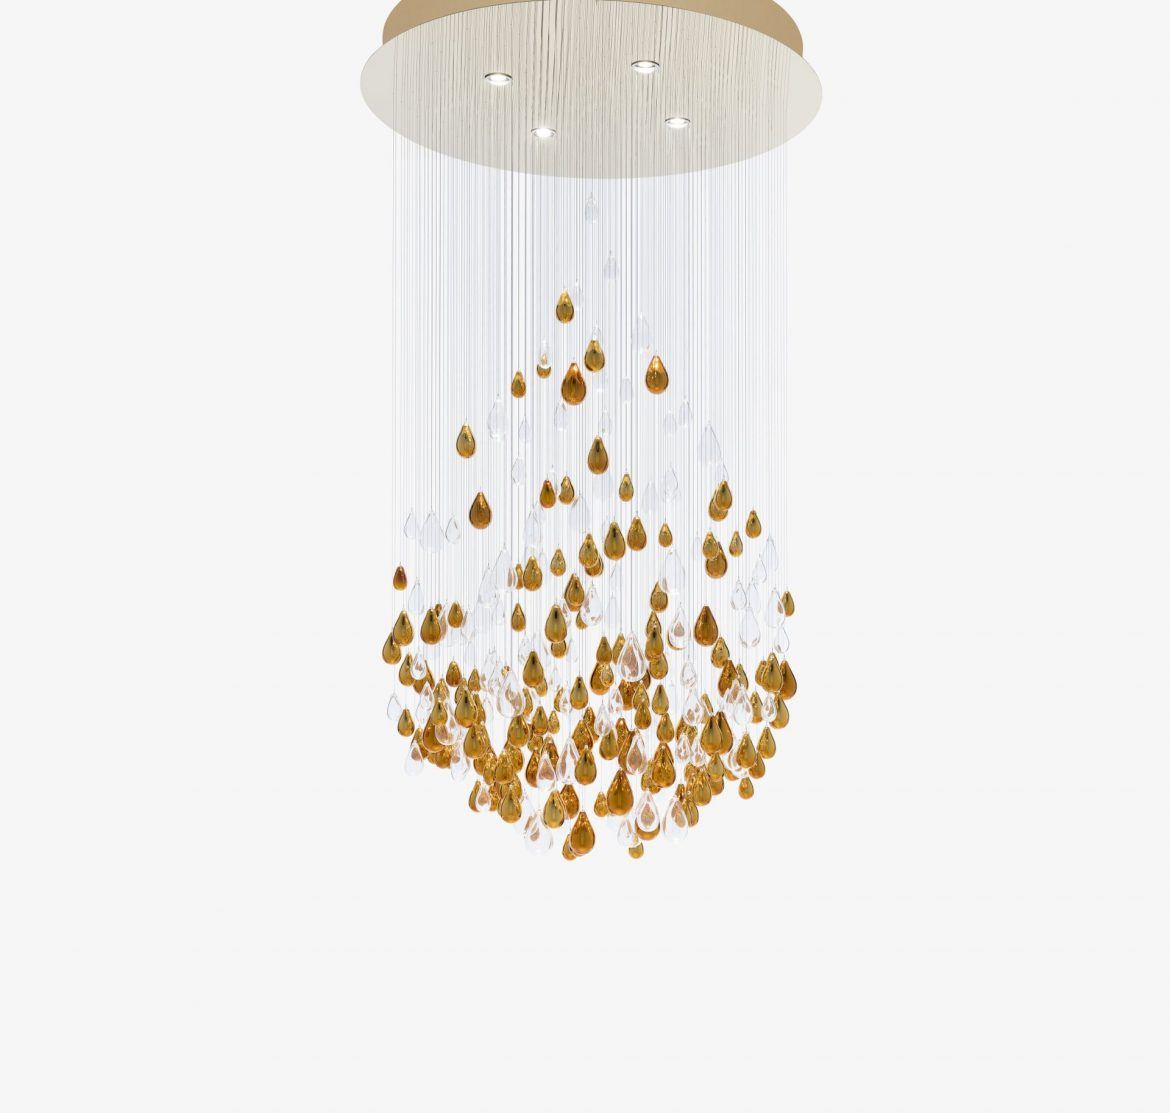 Mohd: Luxury Lighting Designs For Your Home Decor